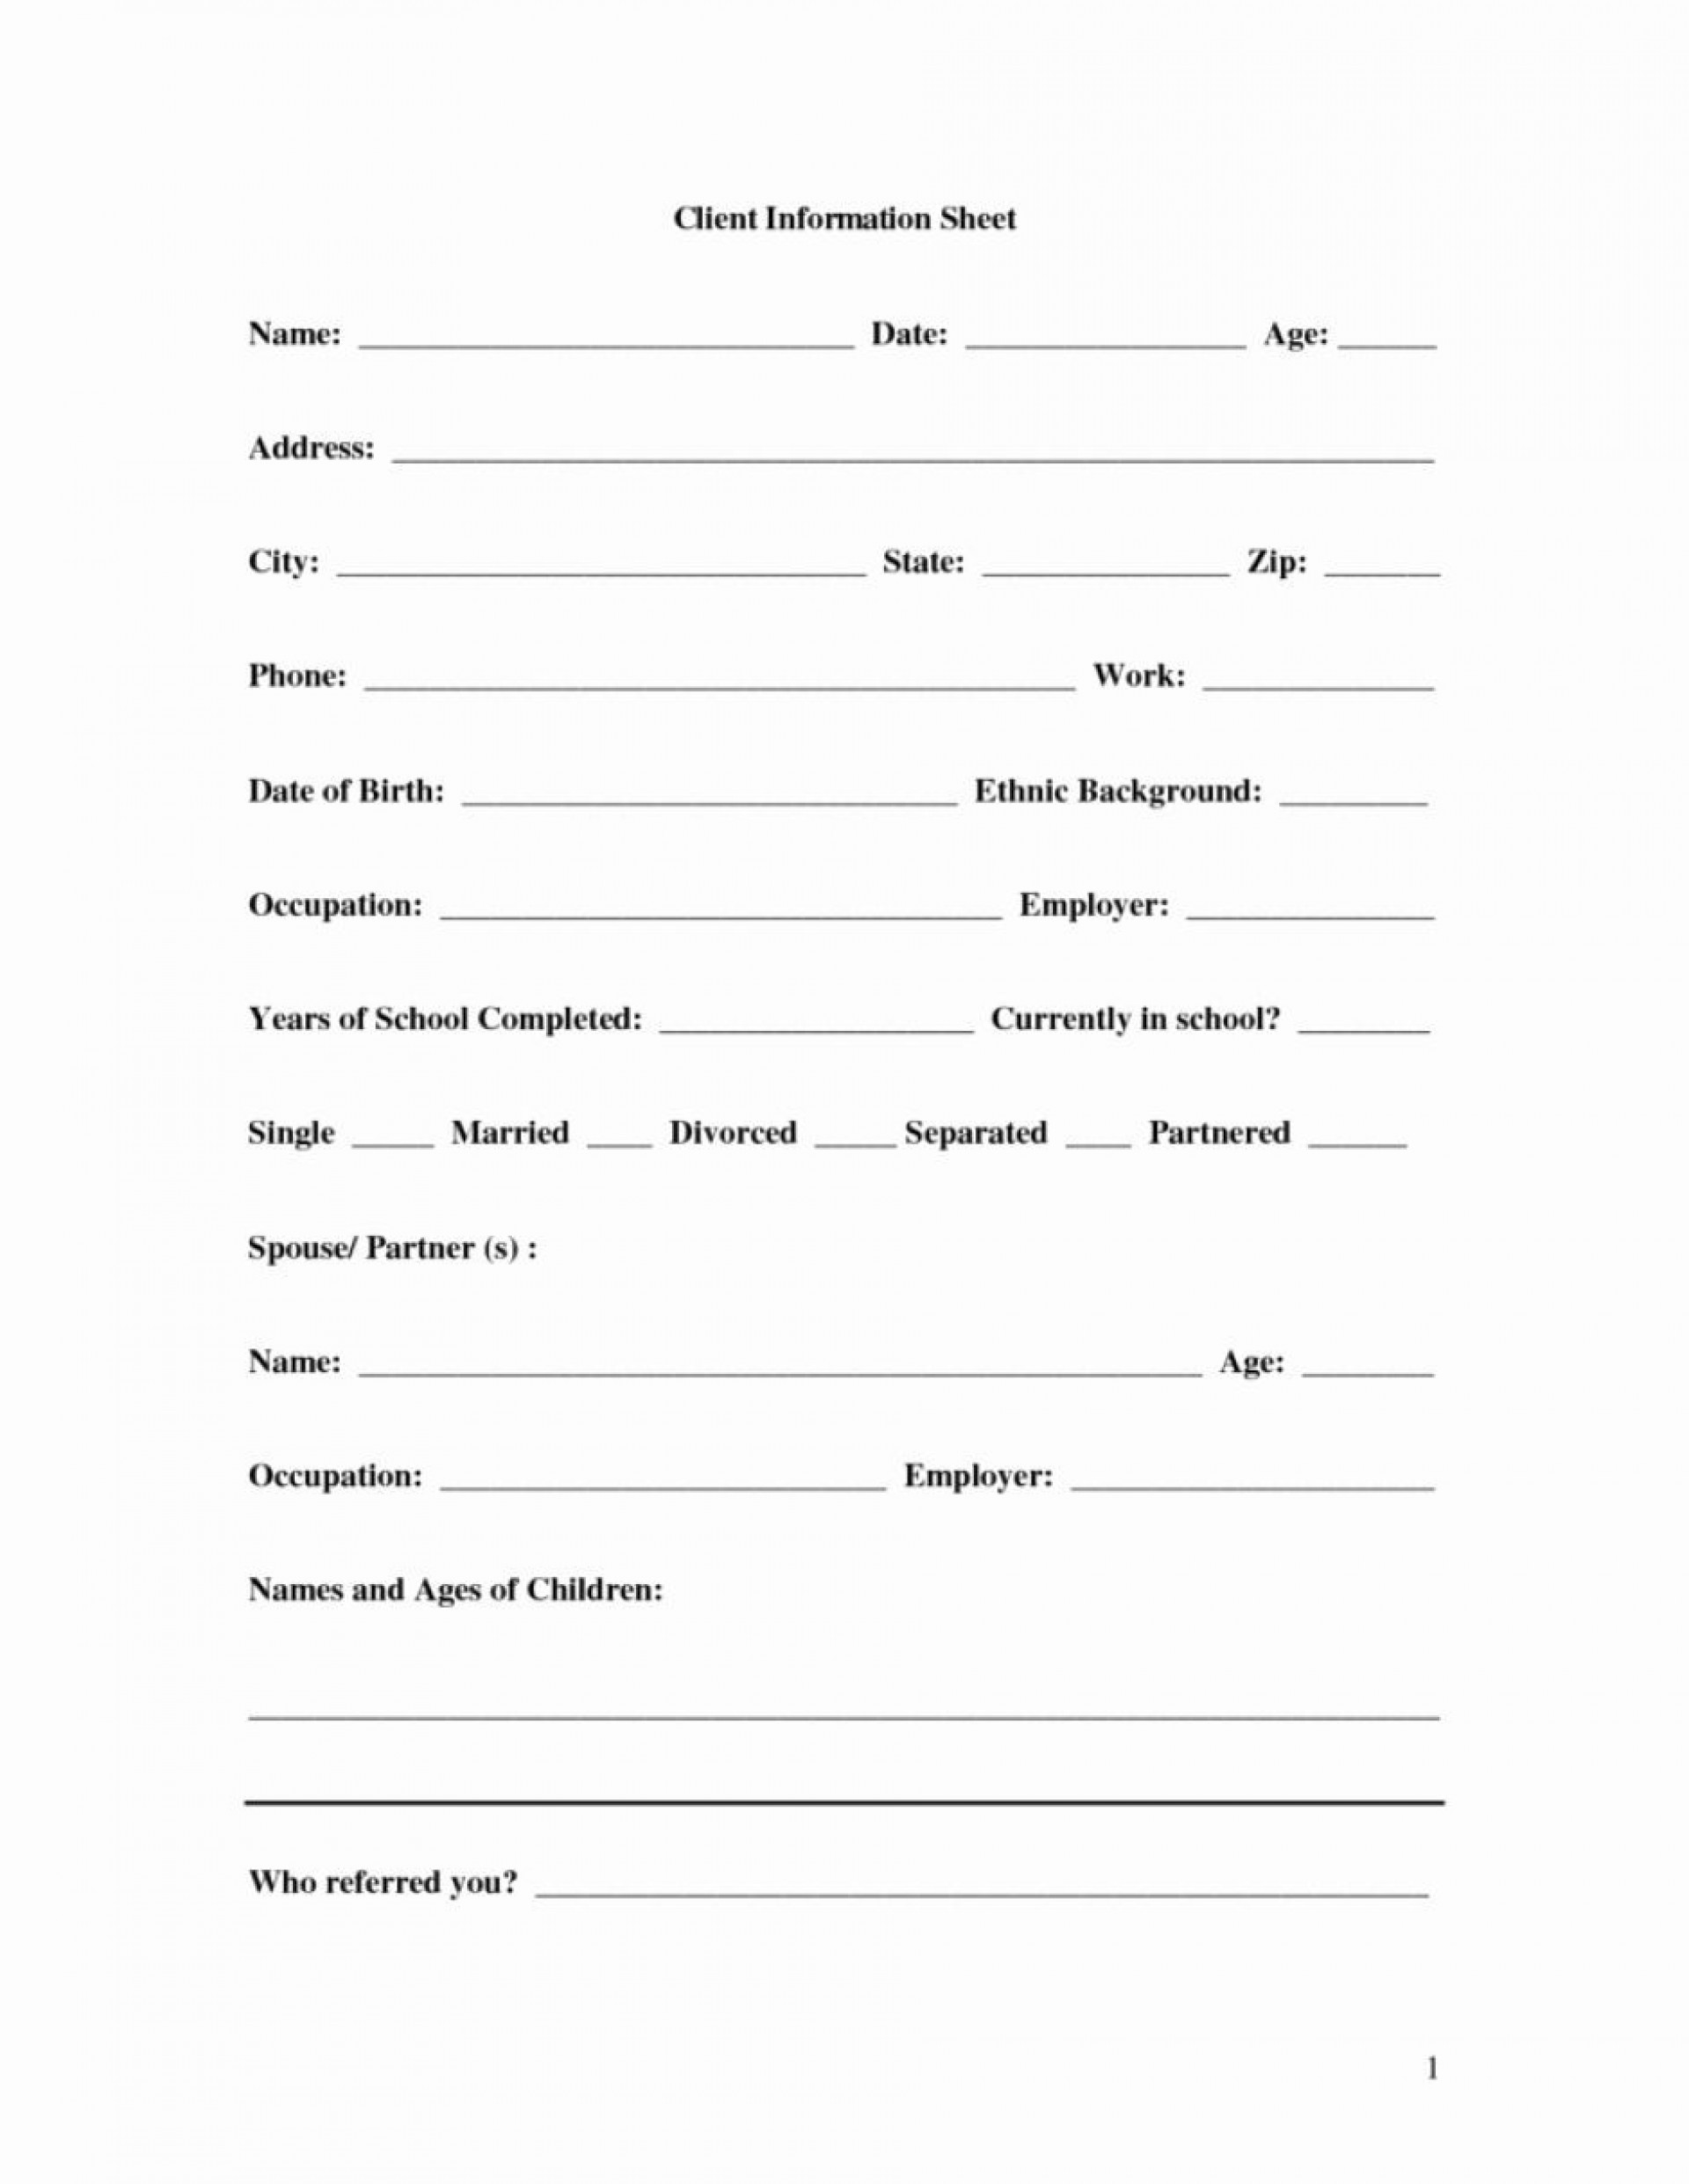 001 Remarkable Client Information Form Template Free Download High Resolution 1920